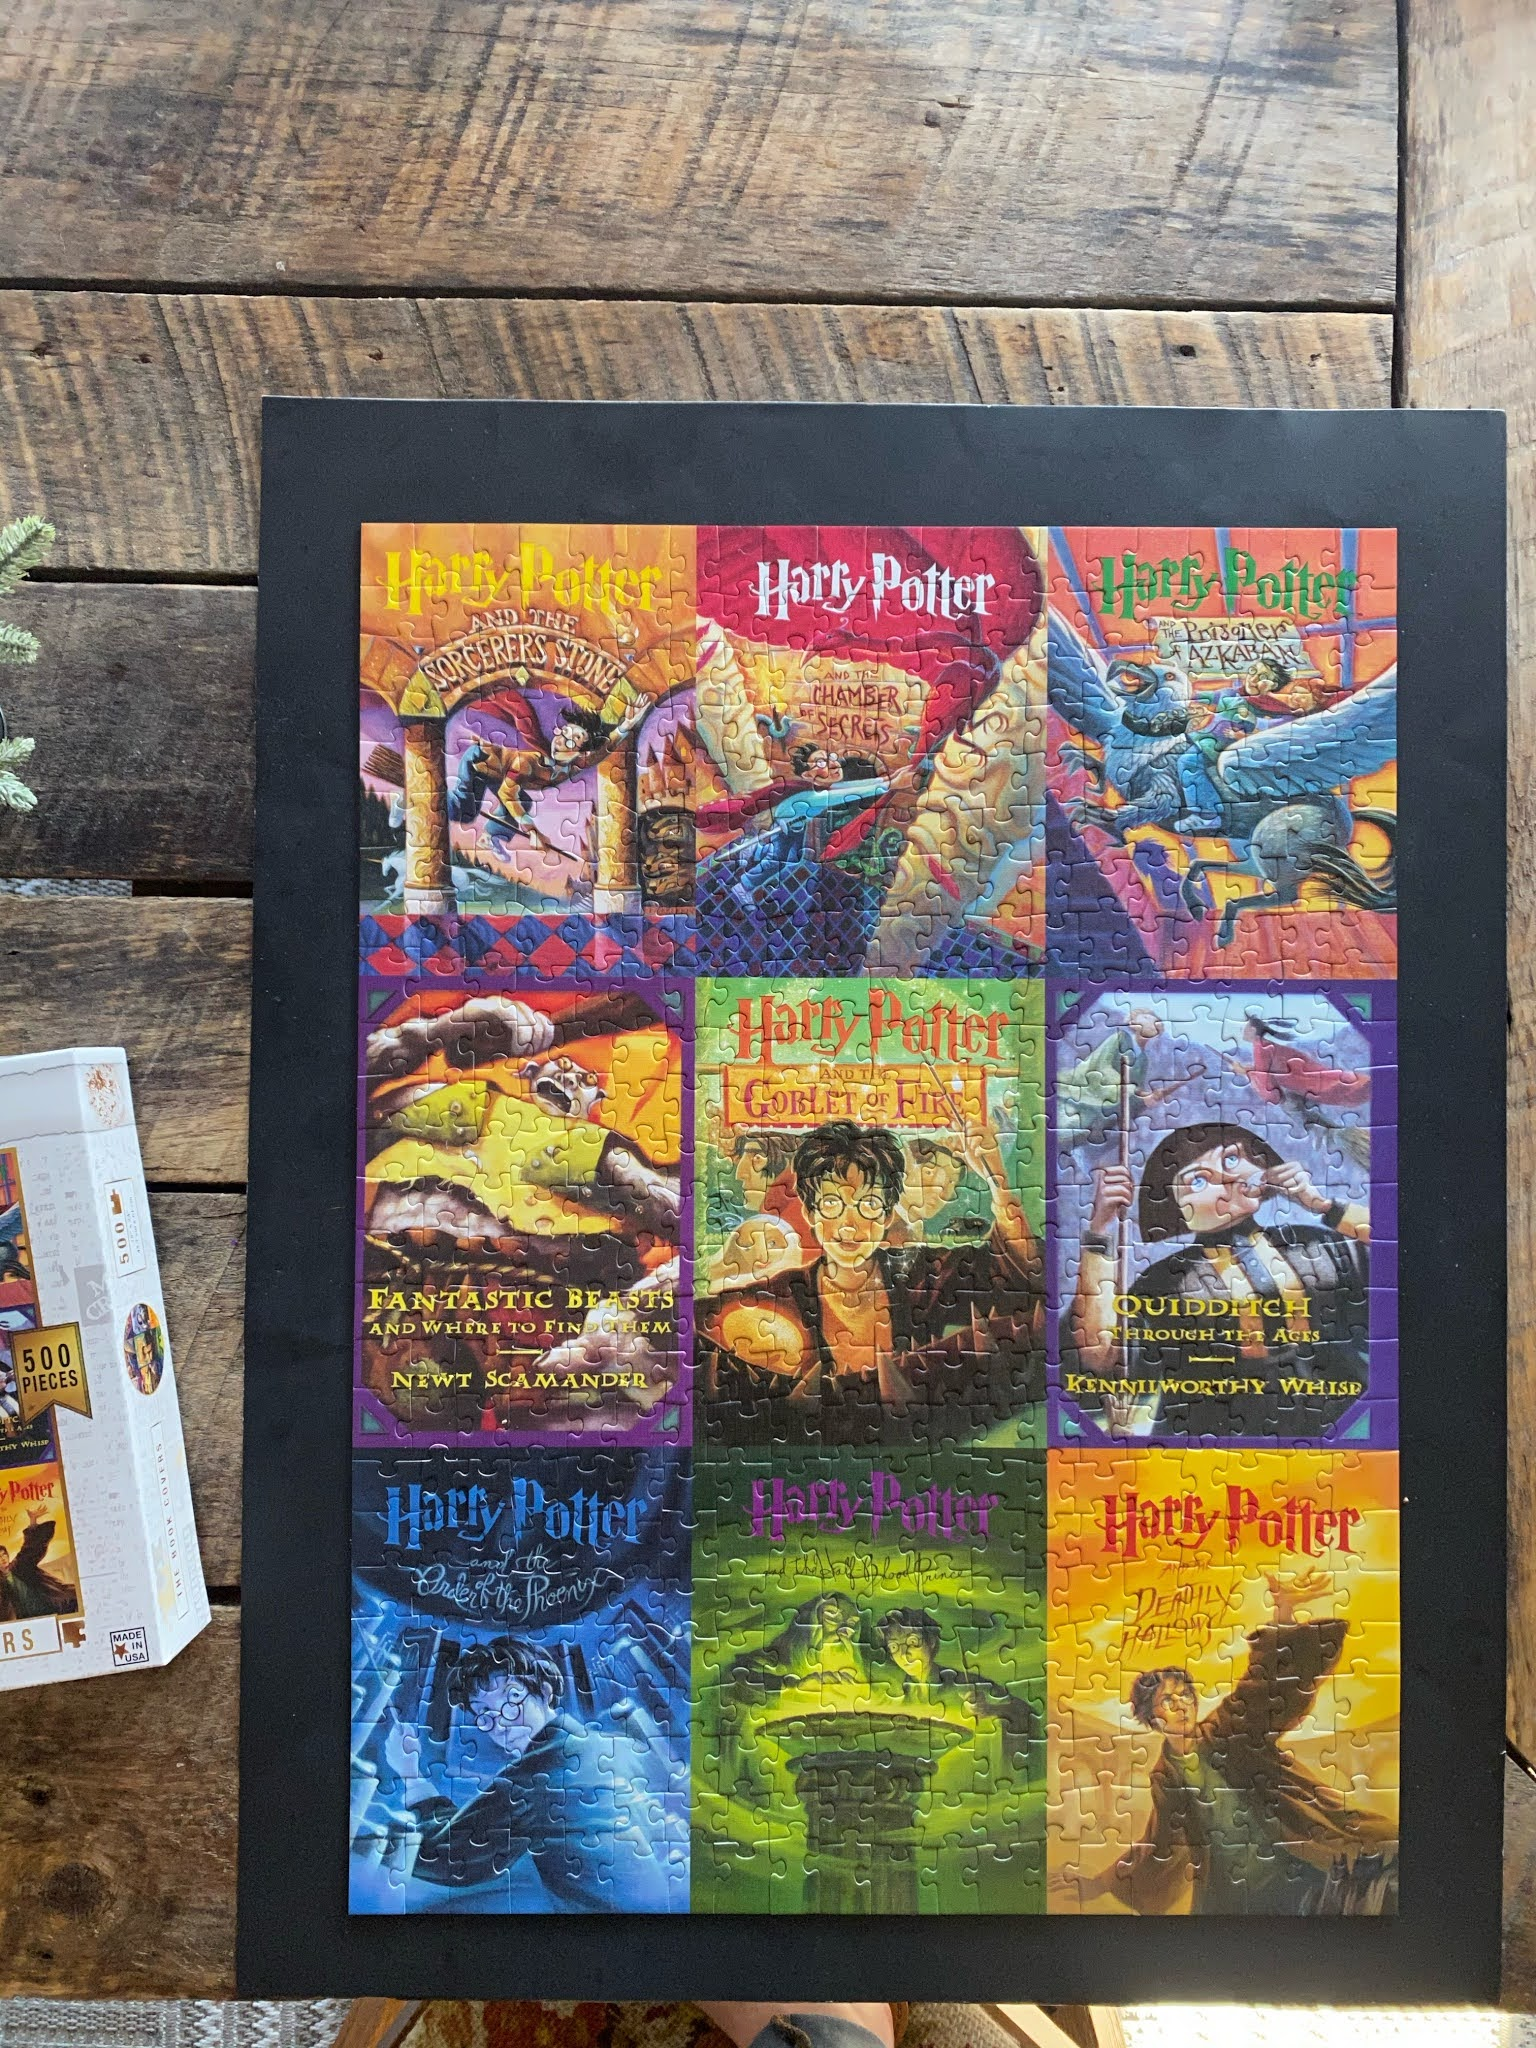 Harry Potter Puzzle | www.biblio-style.com